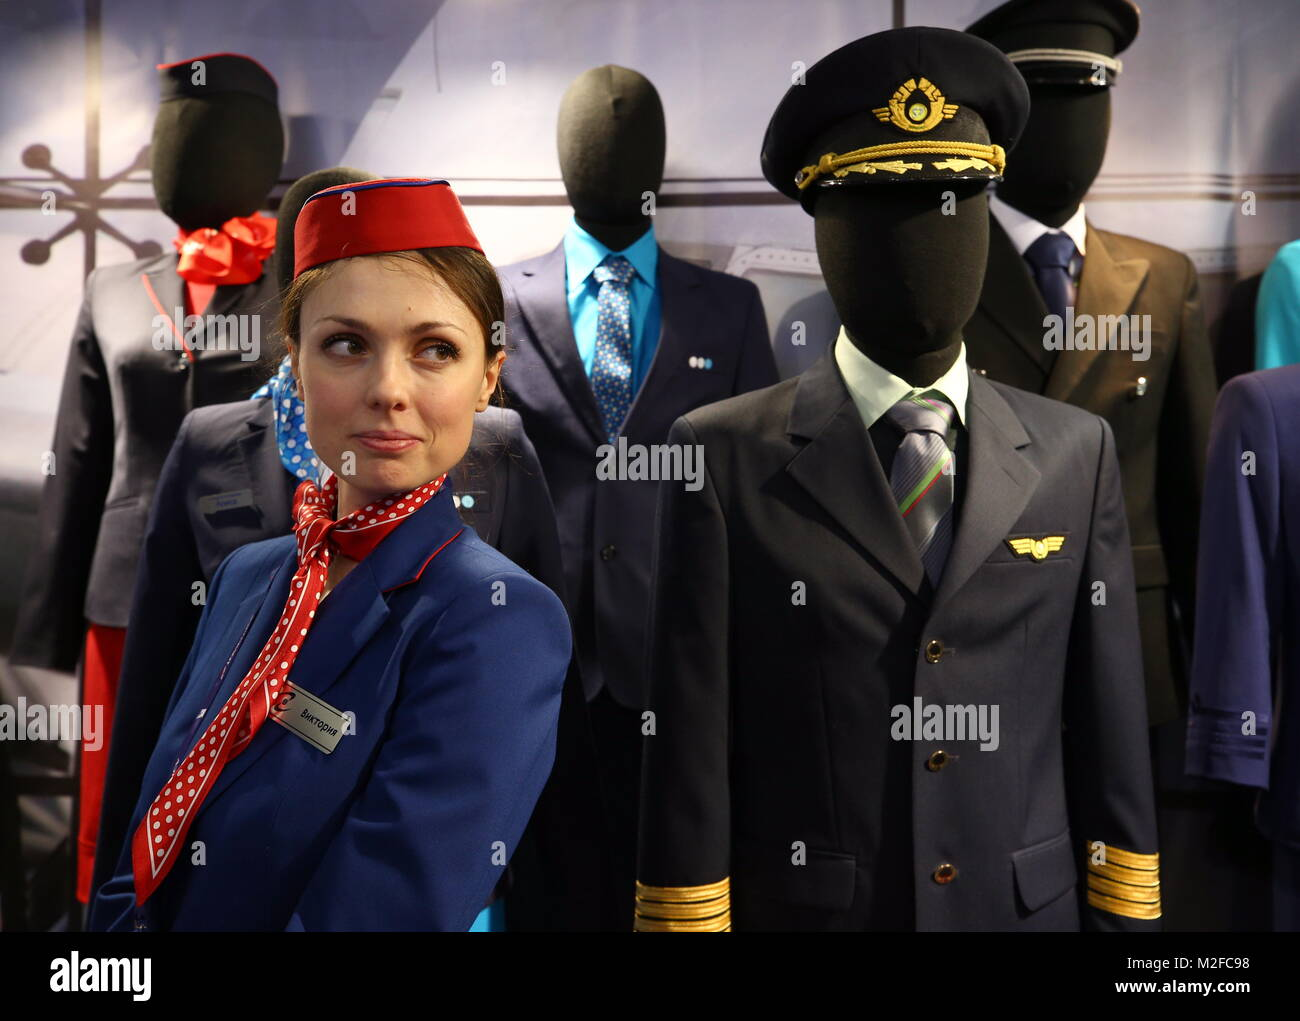 Moscow, Russia. 7th Feb, 2018. A stand of the Galaktika company manufacturing uniforms for civil aviation pilots - Stock Image